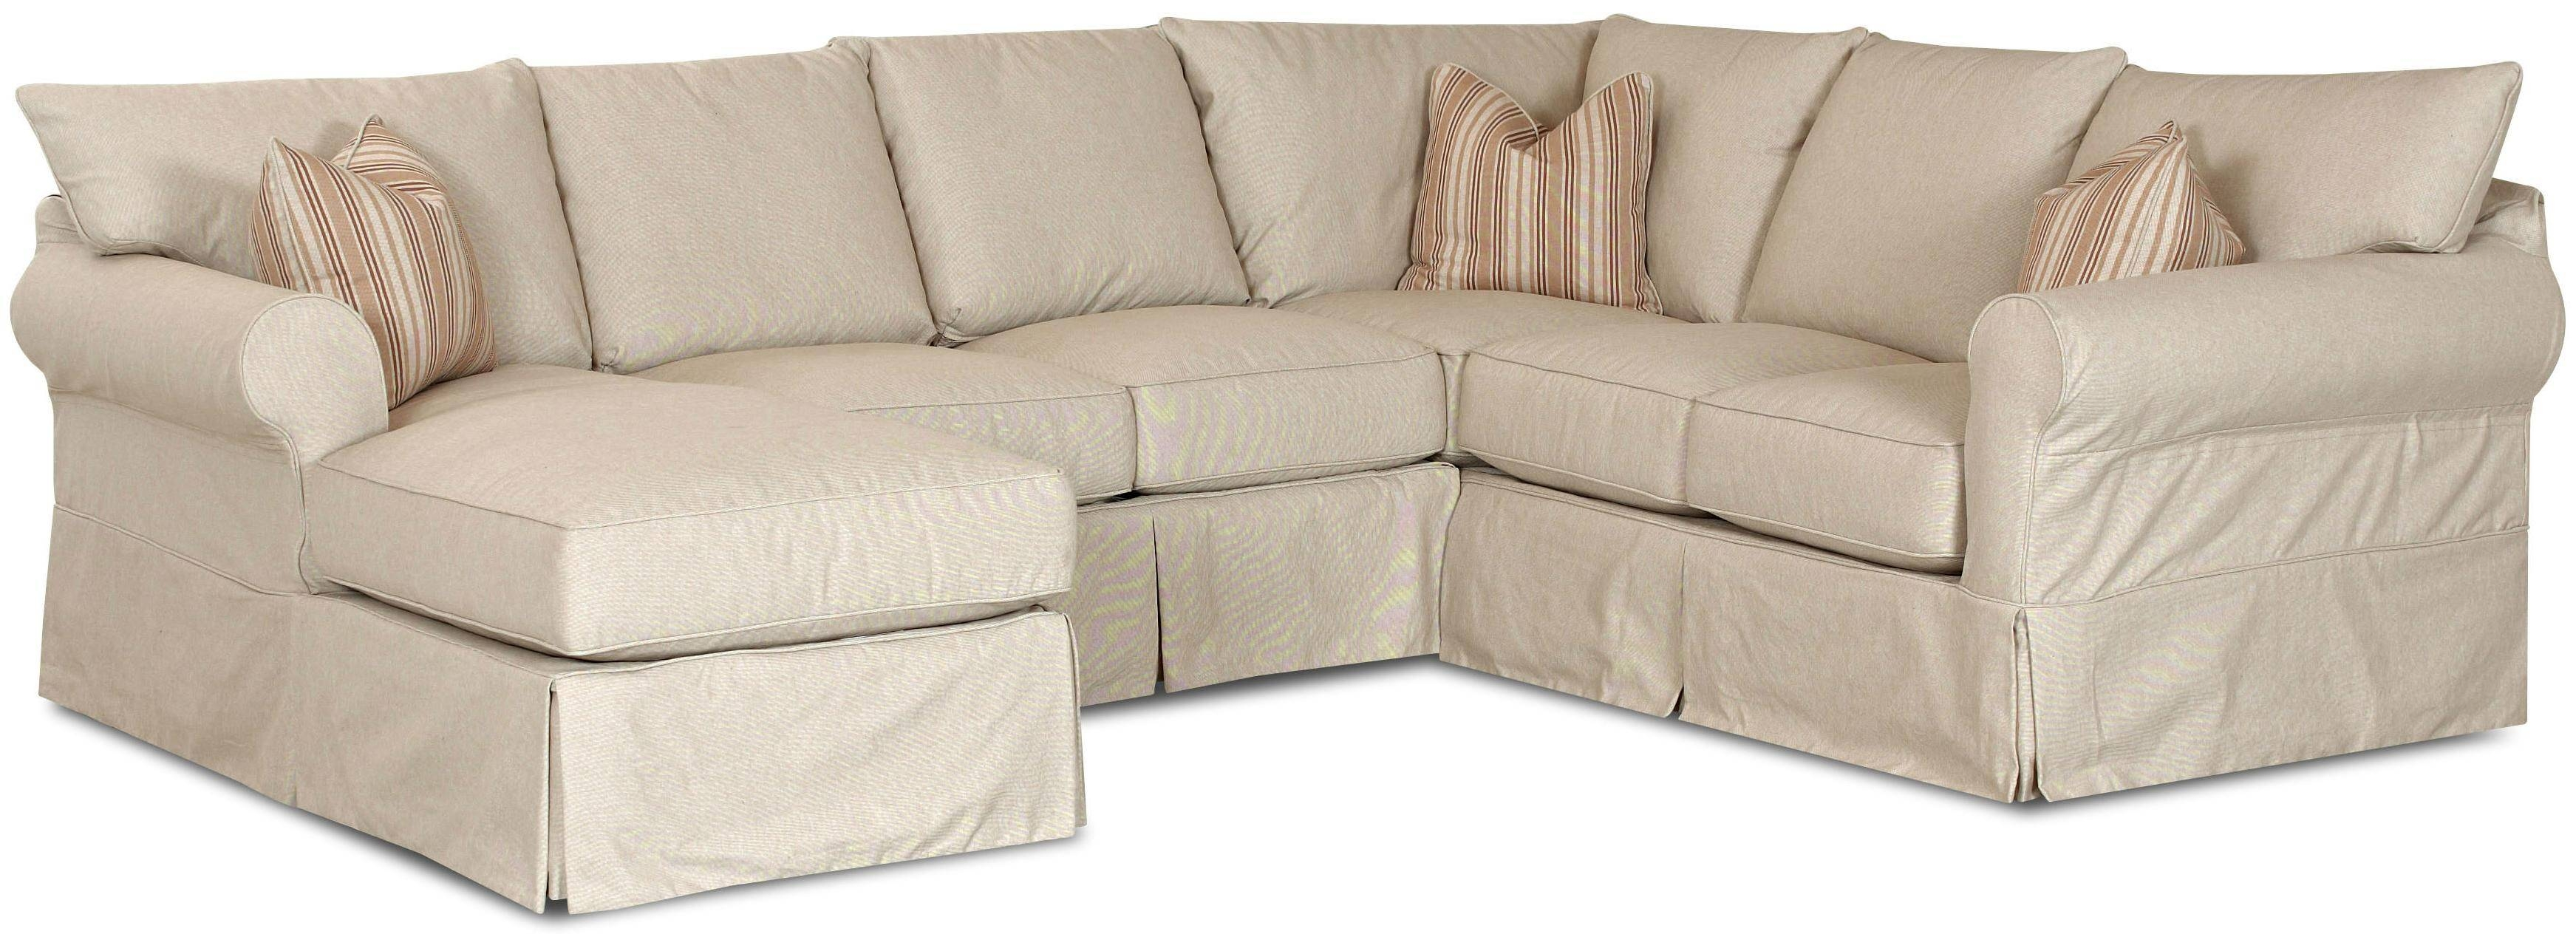 Inspirations: Interesting Furniture Sectional Sofa Slipcovers For throughout Chaise Sofa Covers (Image 16 of 30)